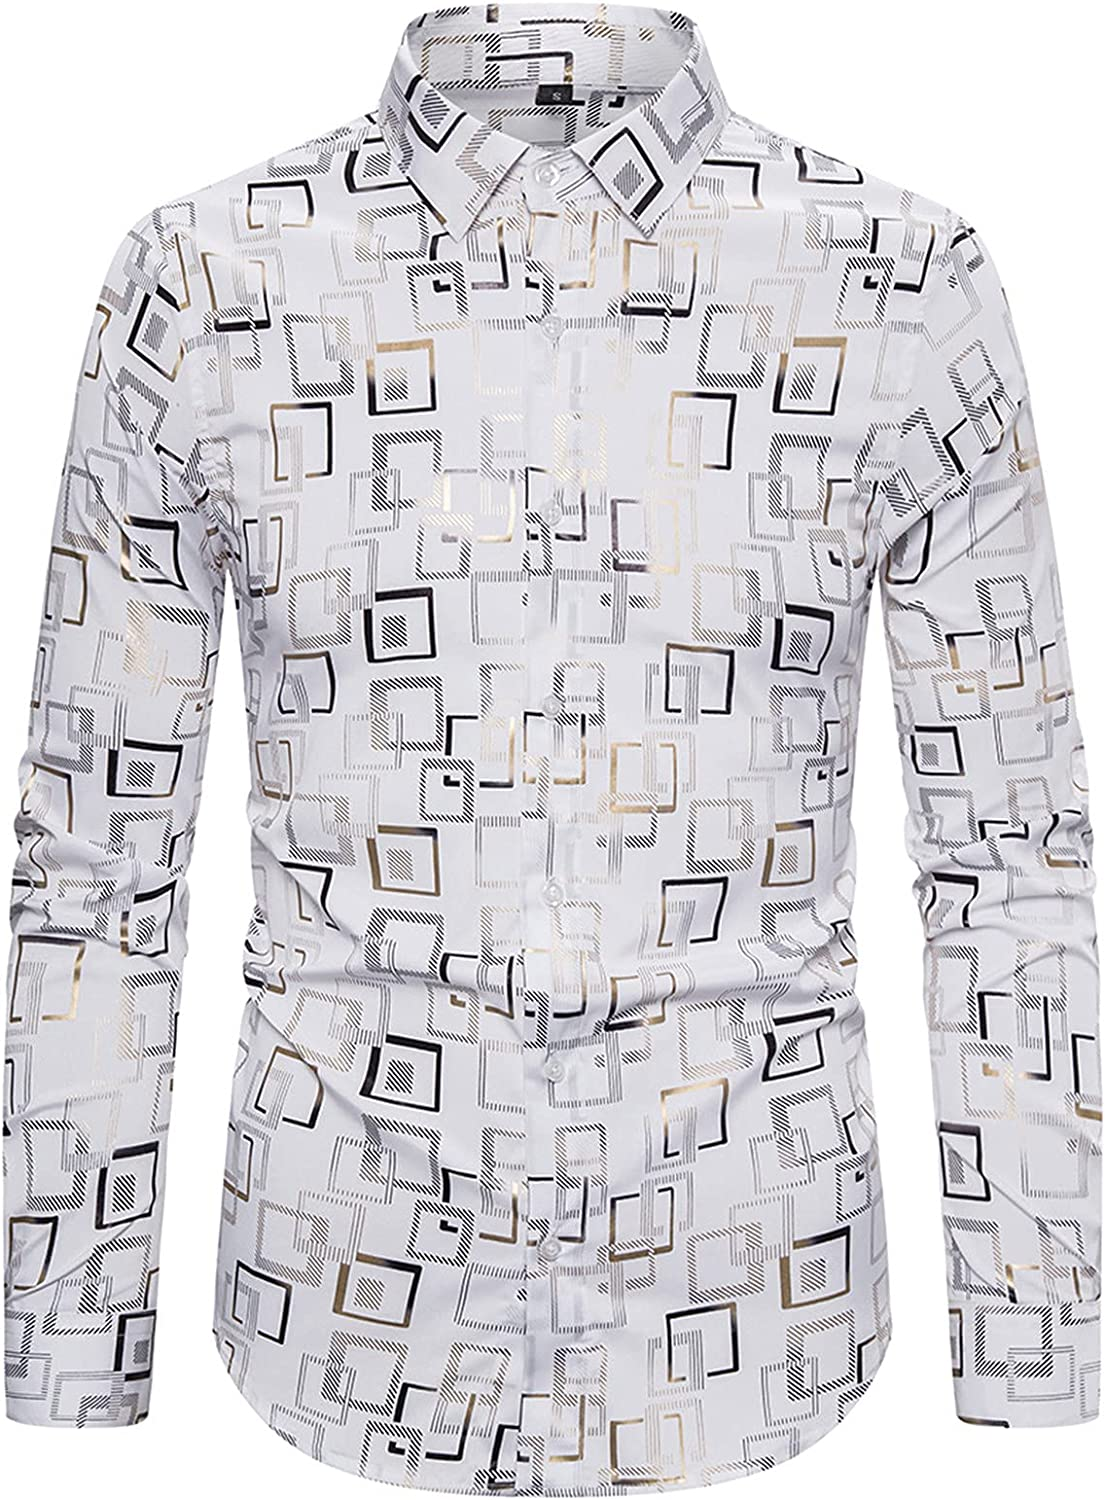 Mens Slim Fit Shirts Luxury Print Shirt Long Sleeve Slim Fit Button Down Dress Shirts for Party/Wedding/Shows